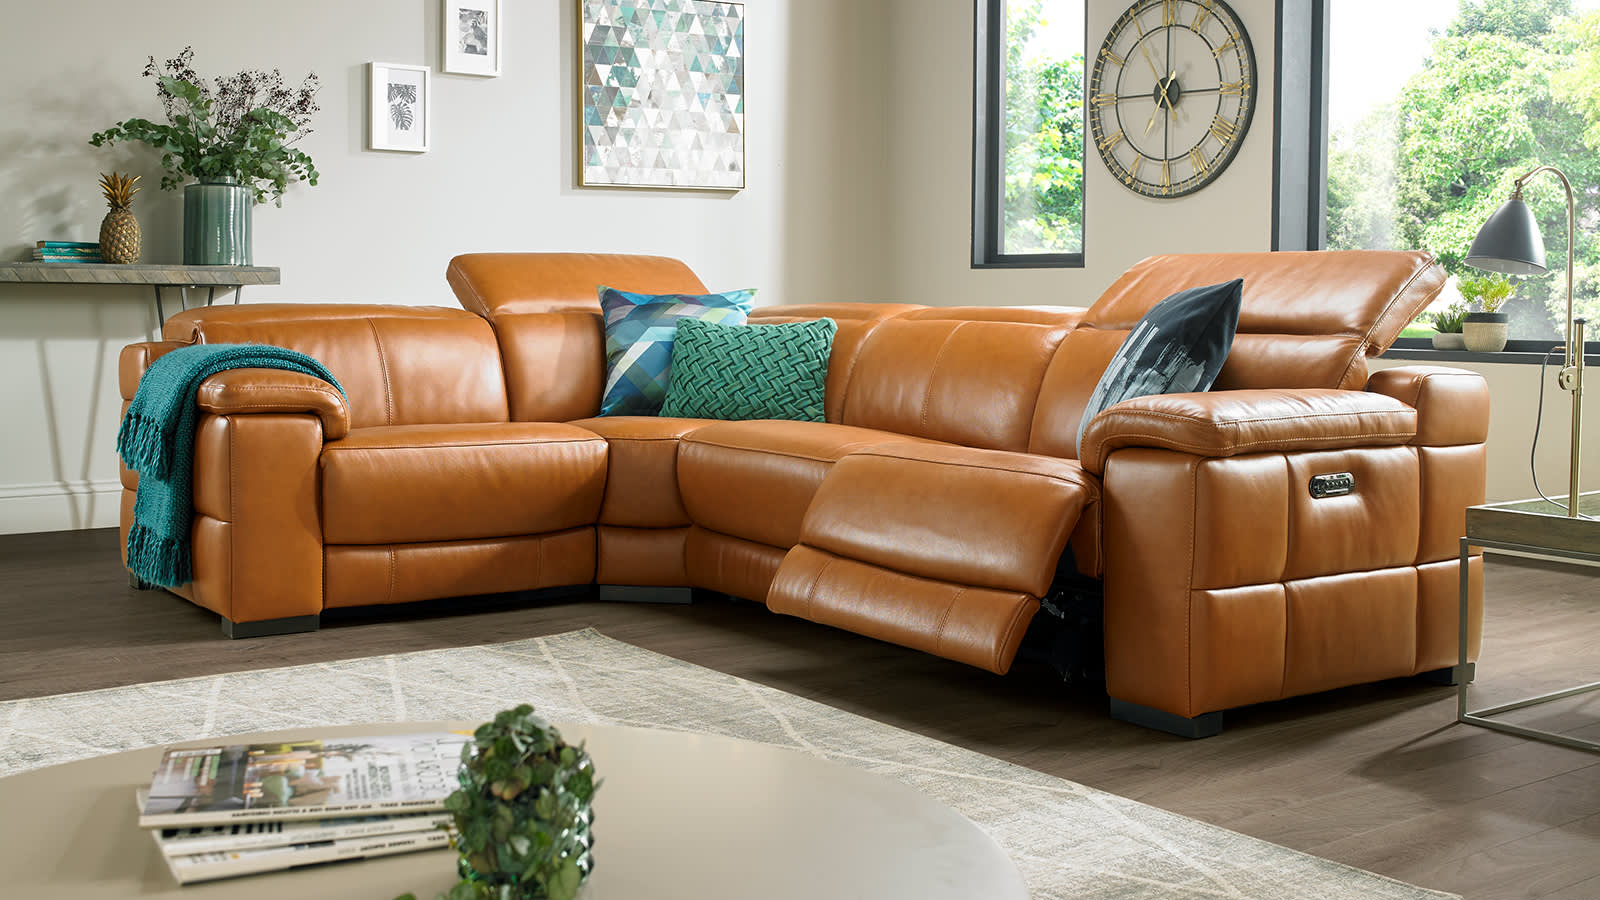 Sofology In Recliner Sofa Chairs (View 16 of 20)